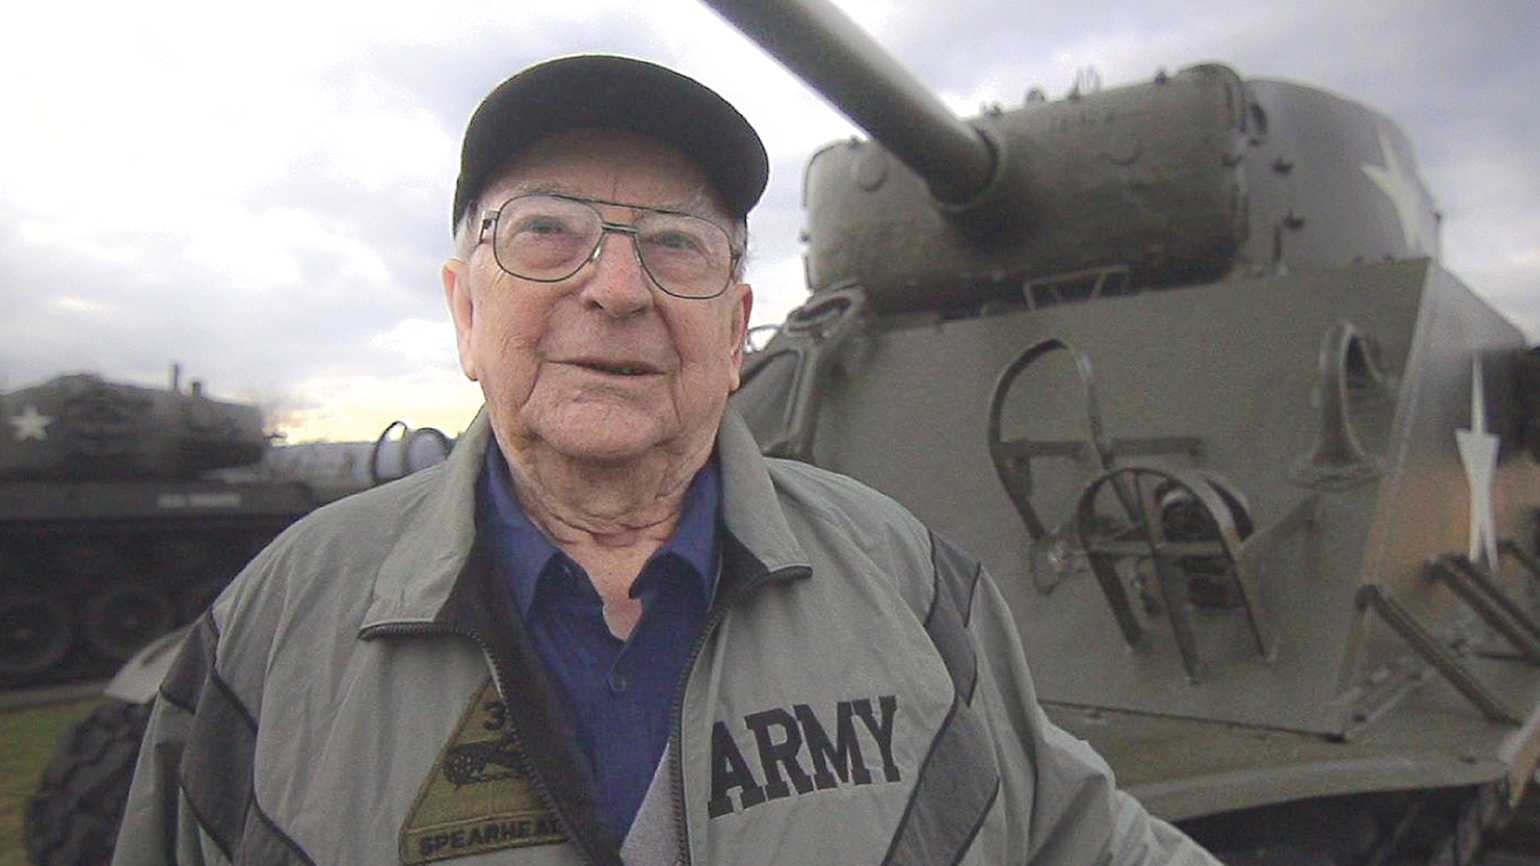 Clarence with a U.S. tank from World War II